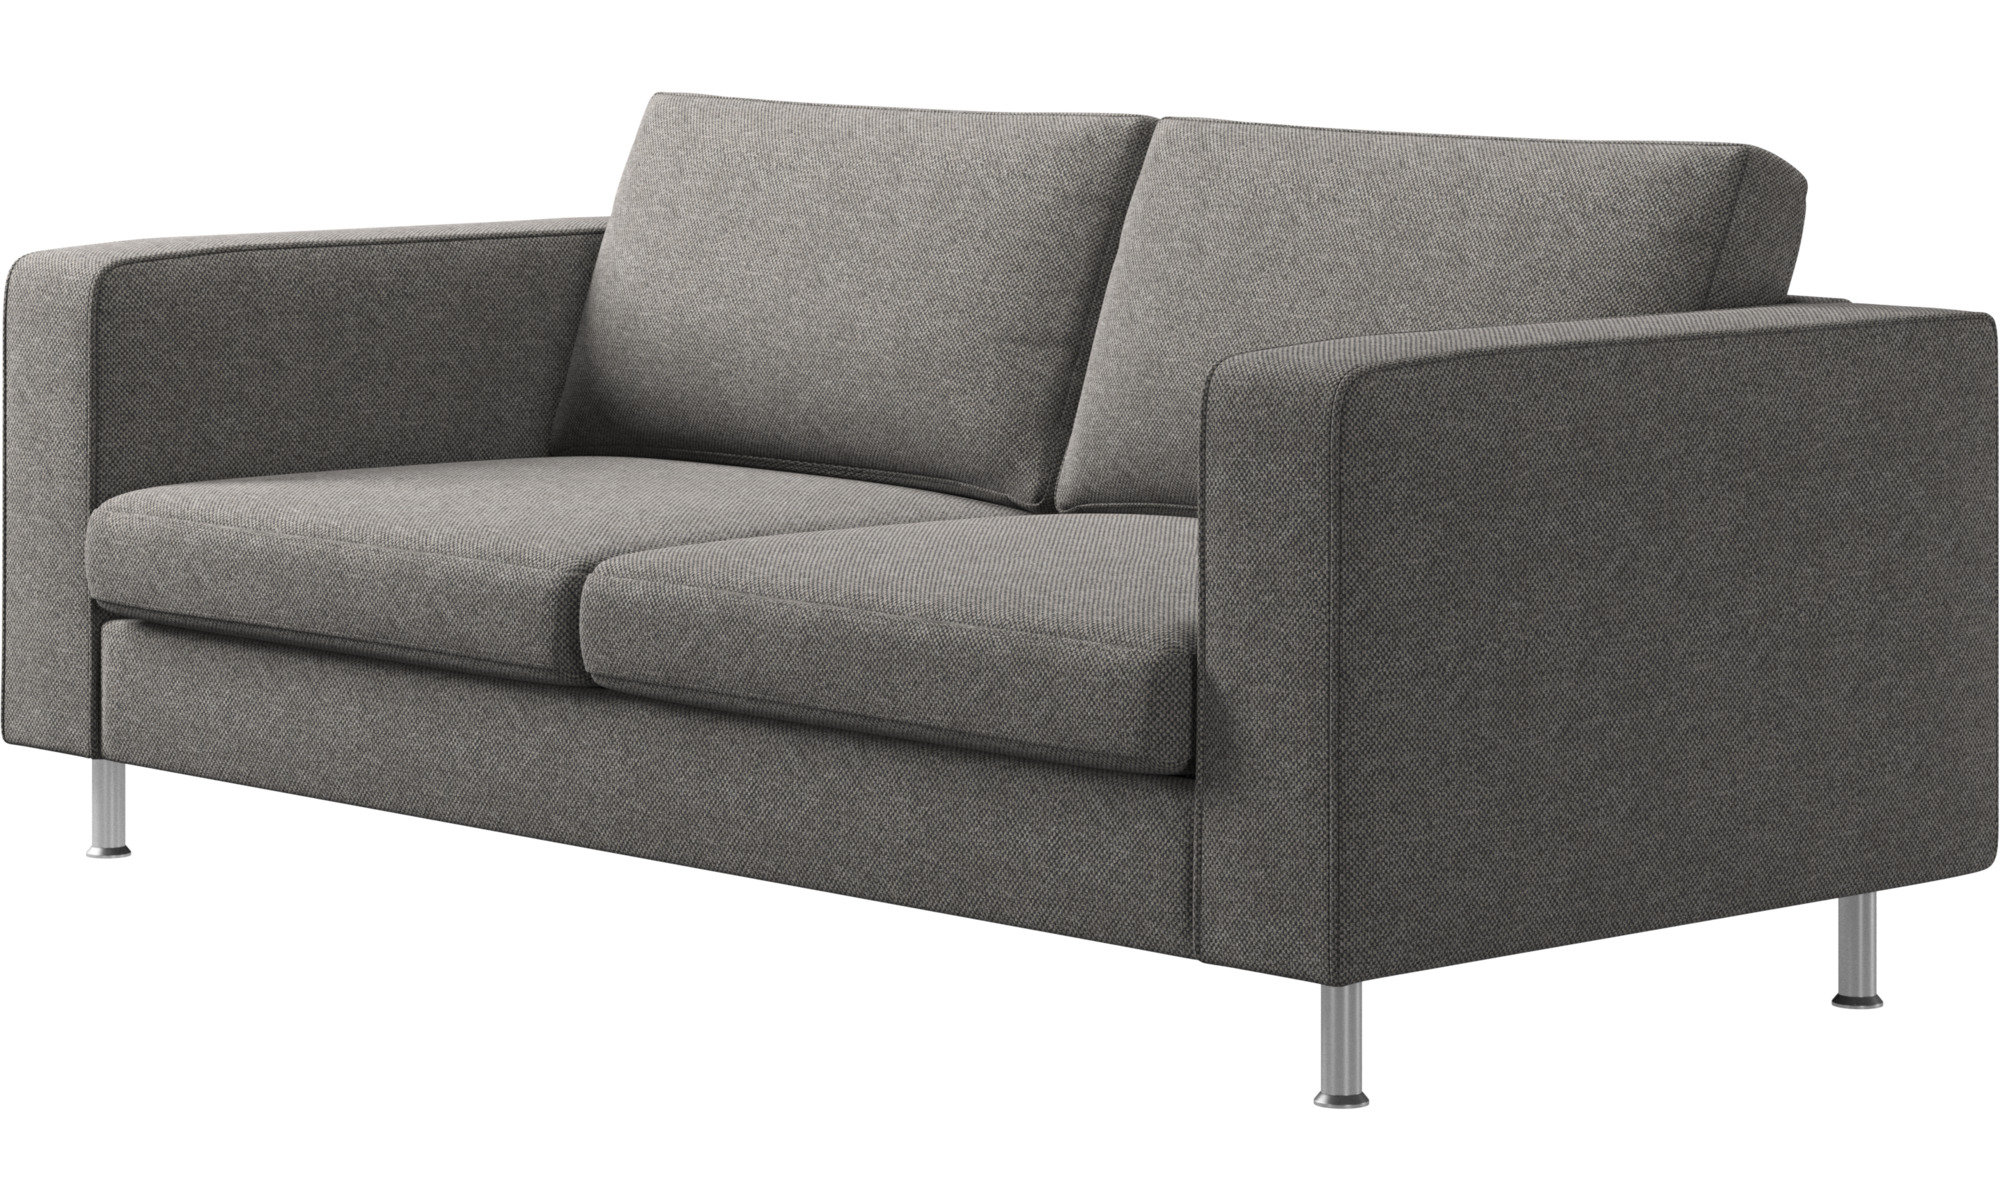 Sof s de 2 plazas y media sof indivi 2 boconcept for Sofa 2 plazas bony